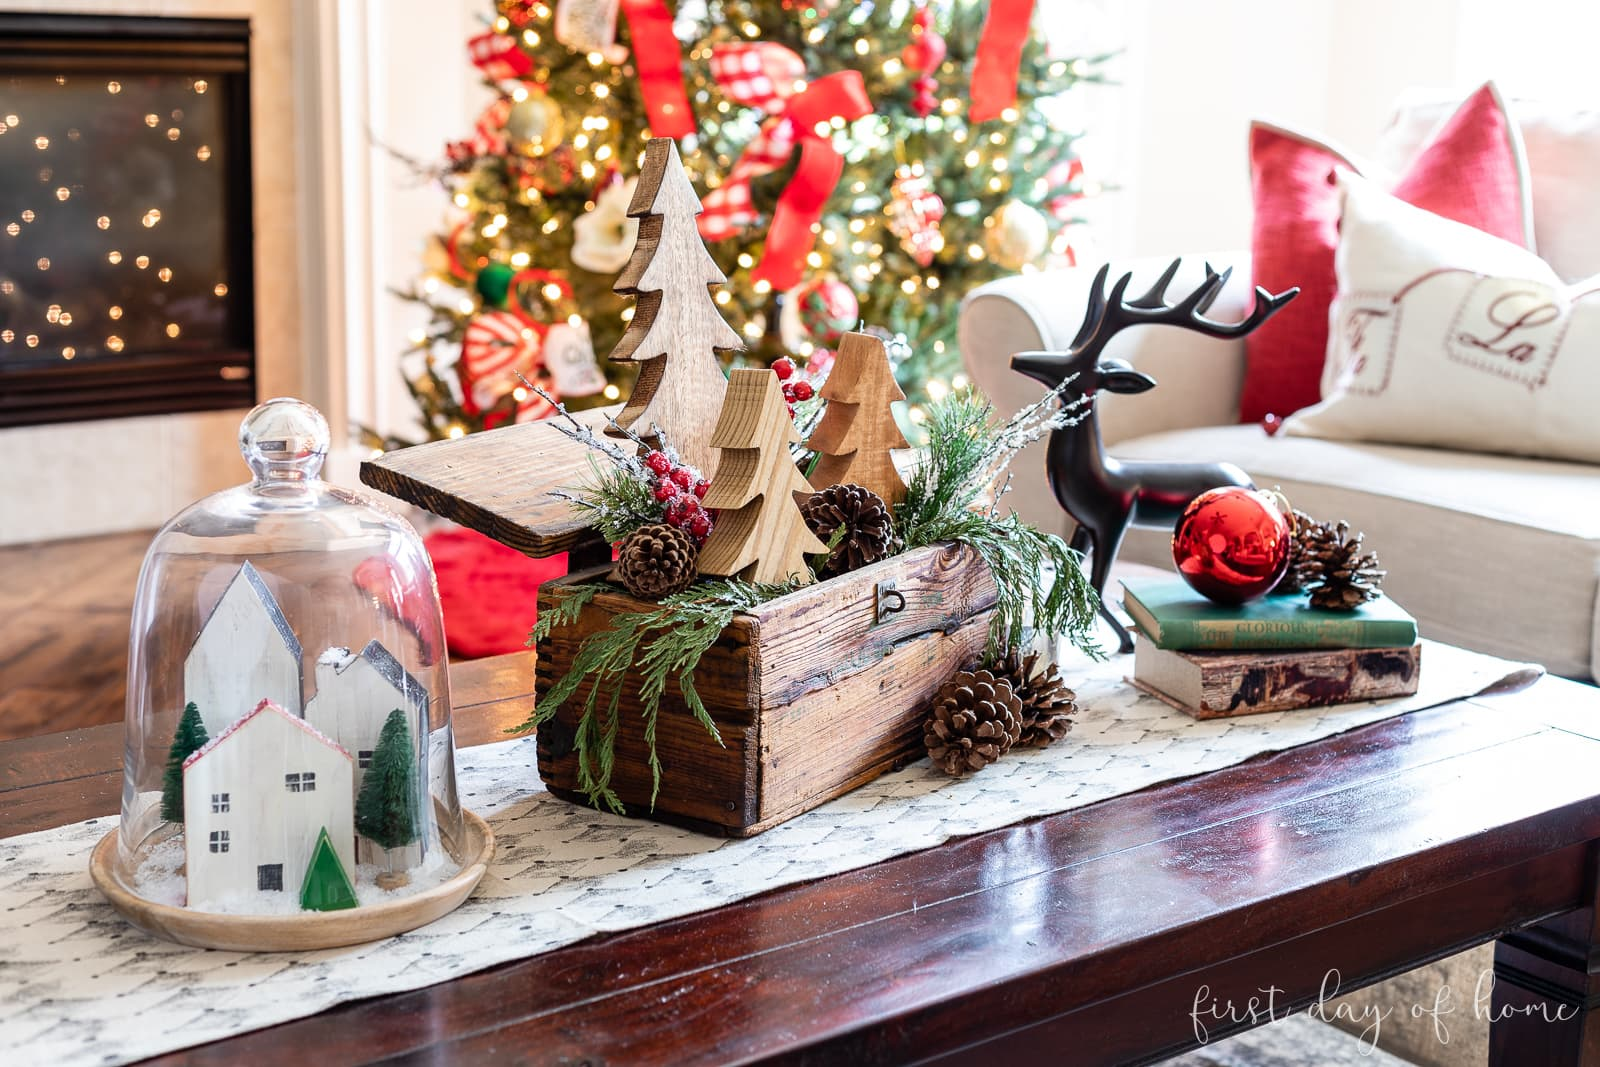 Coffee table decorated for Christmas with cloche, crate decorated with trees, and reindeer with books